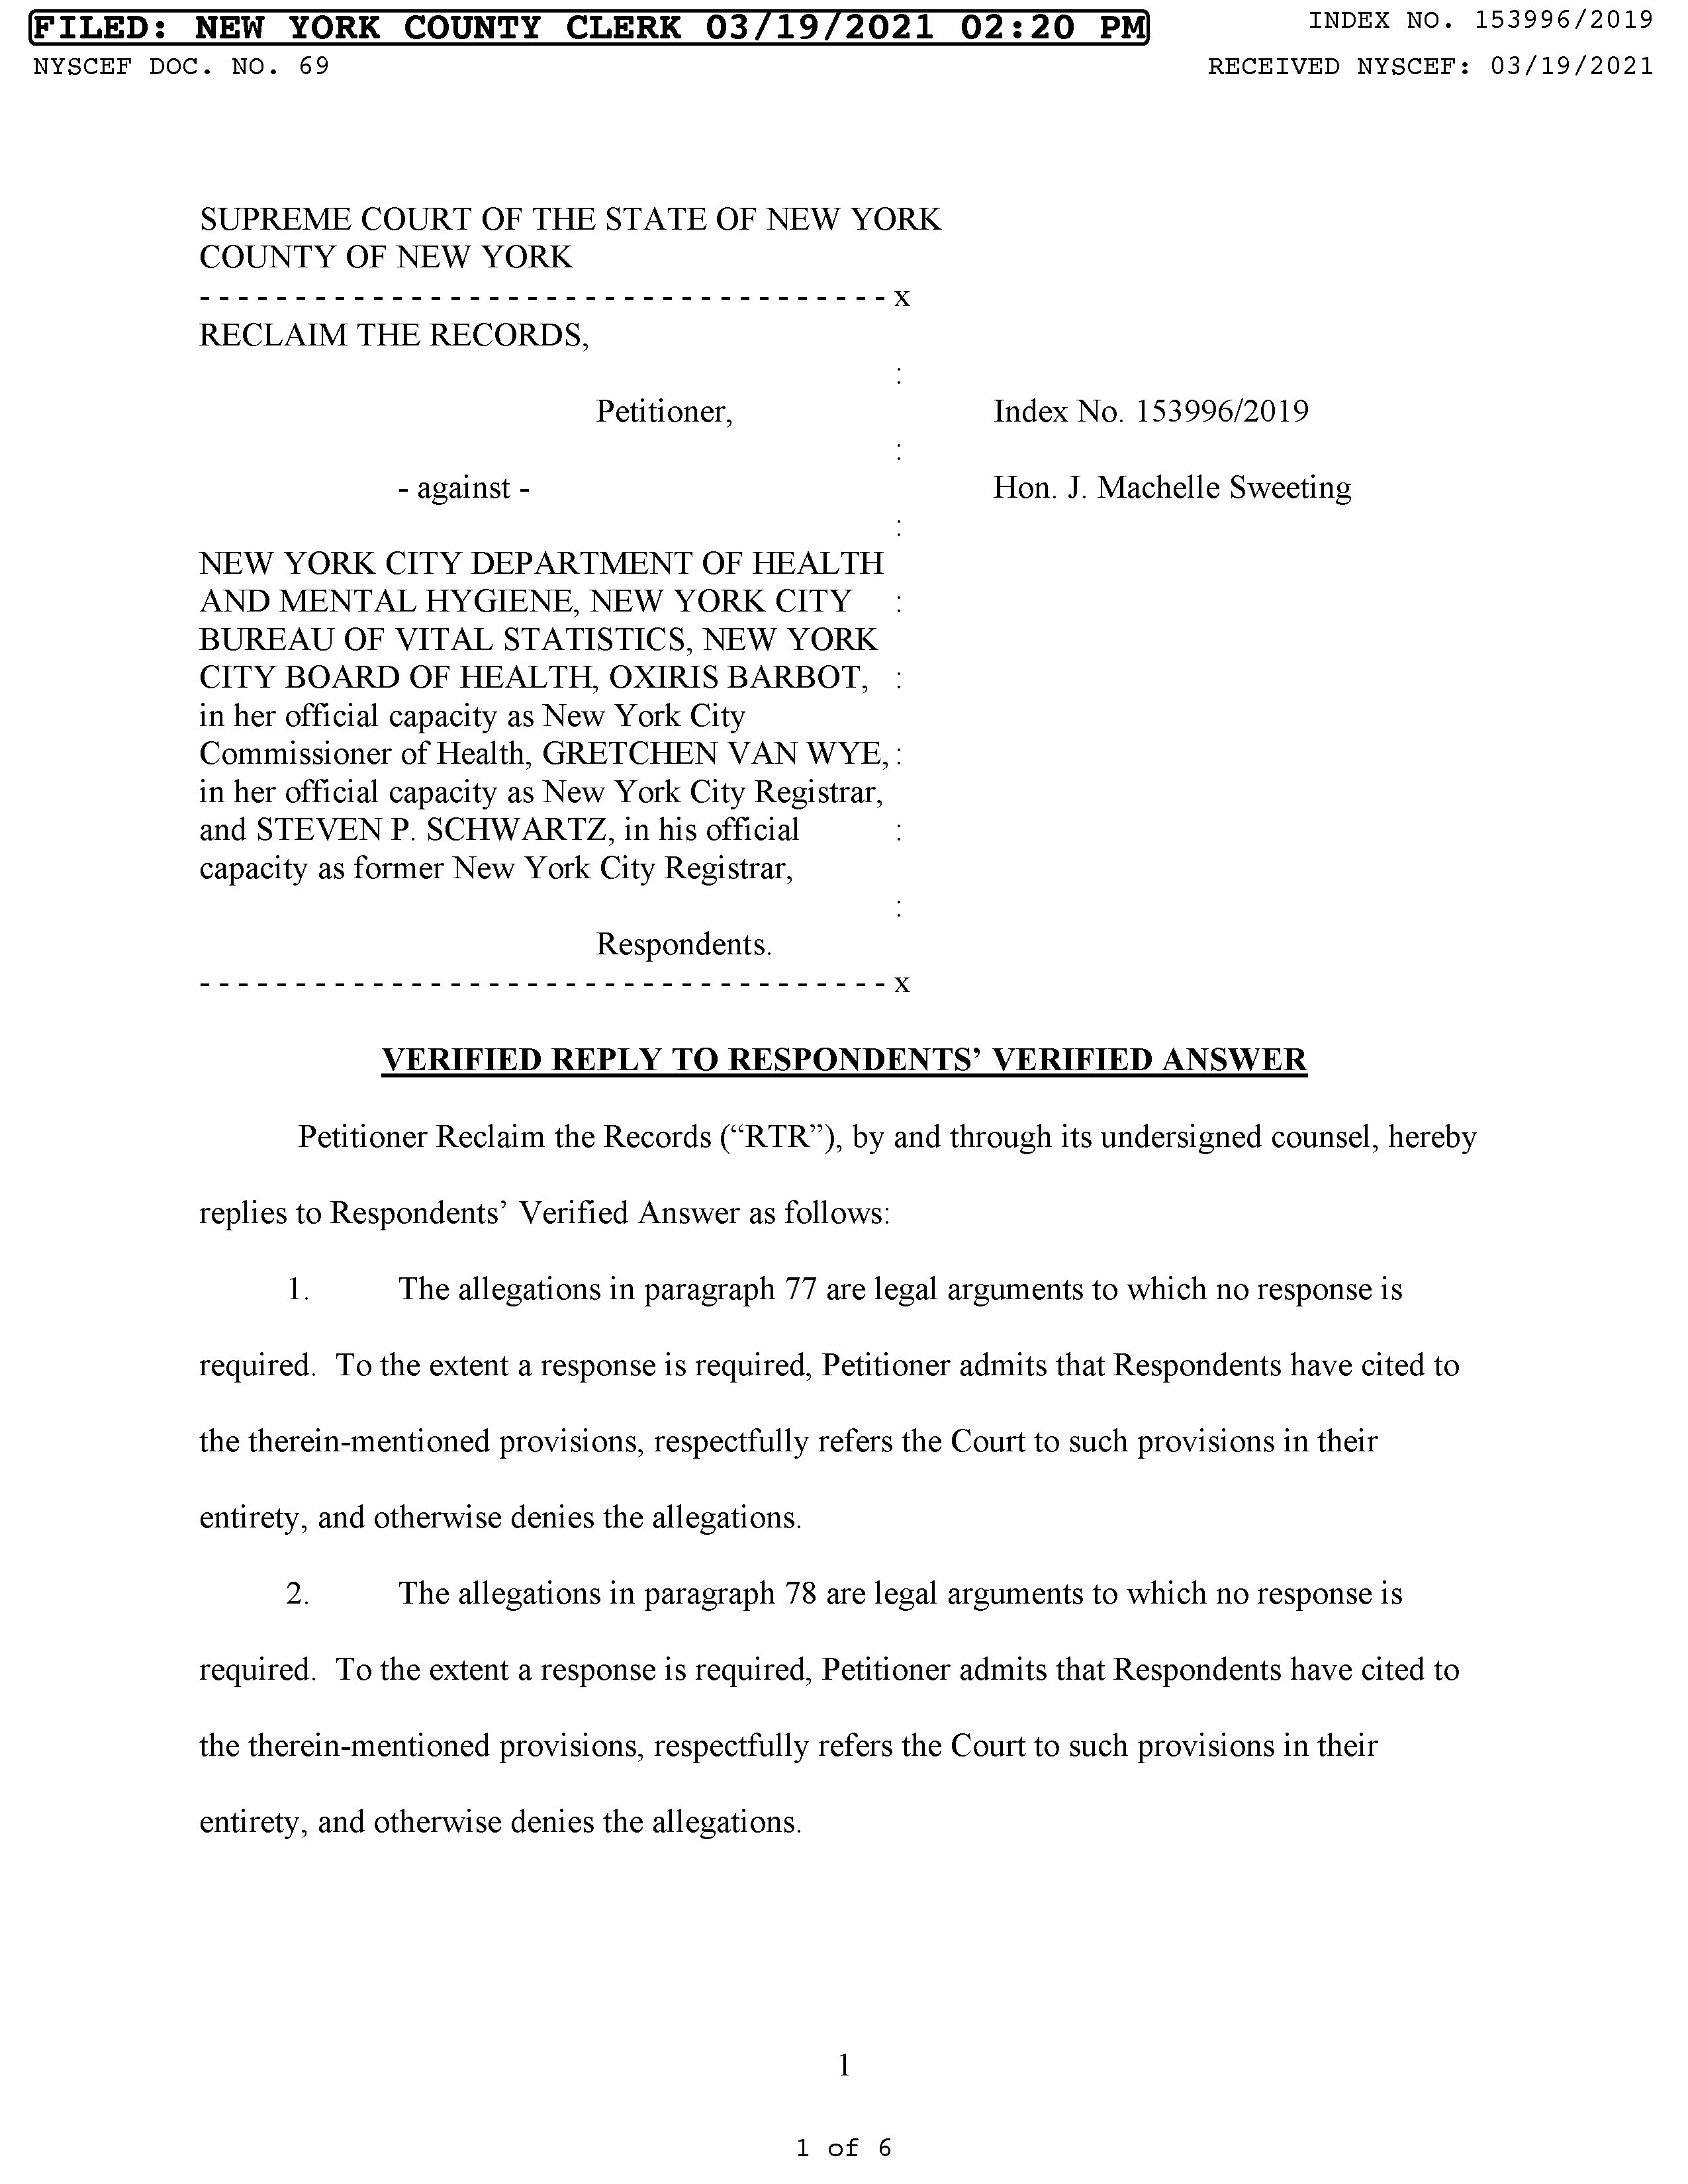 RTR's Verified Reply to the City (March 19, 2021)